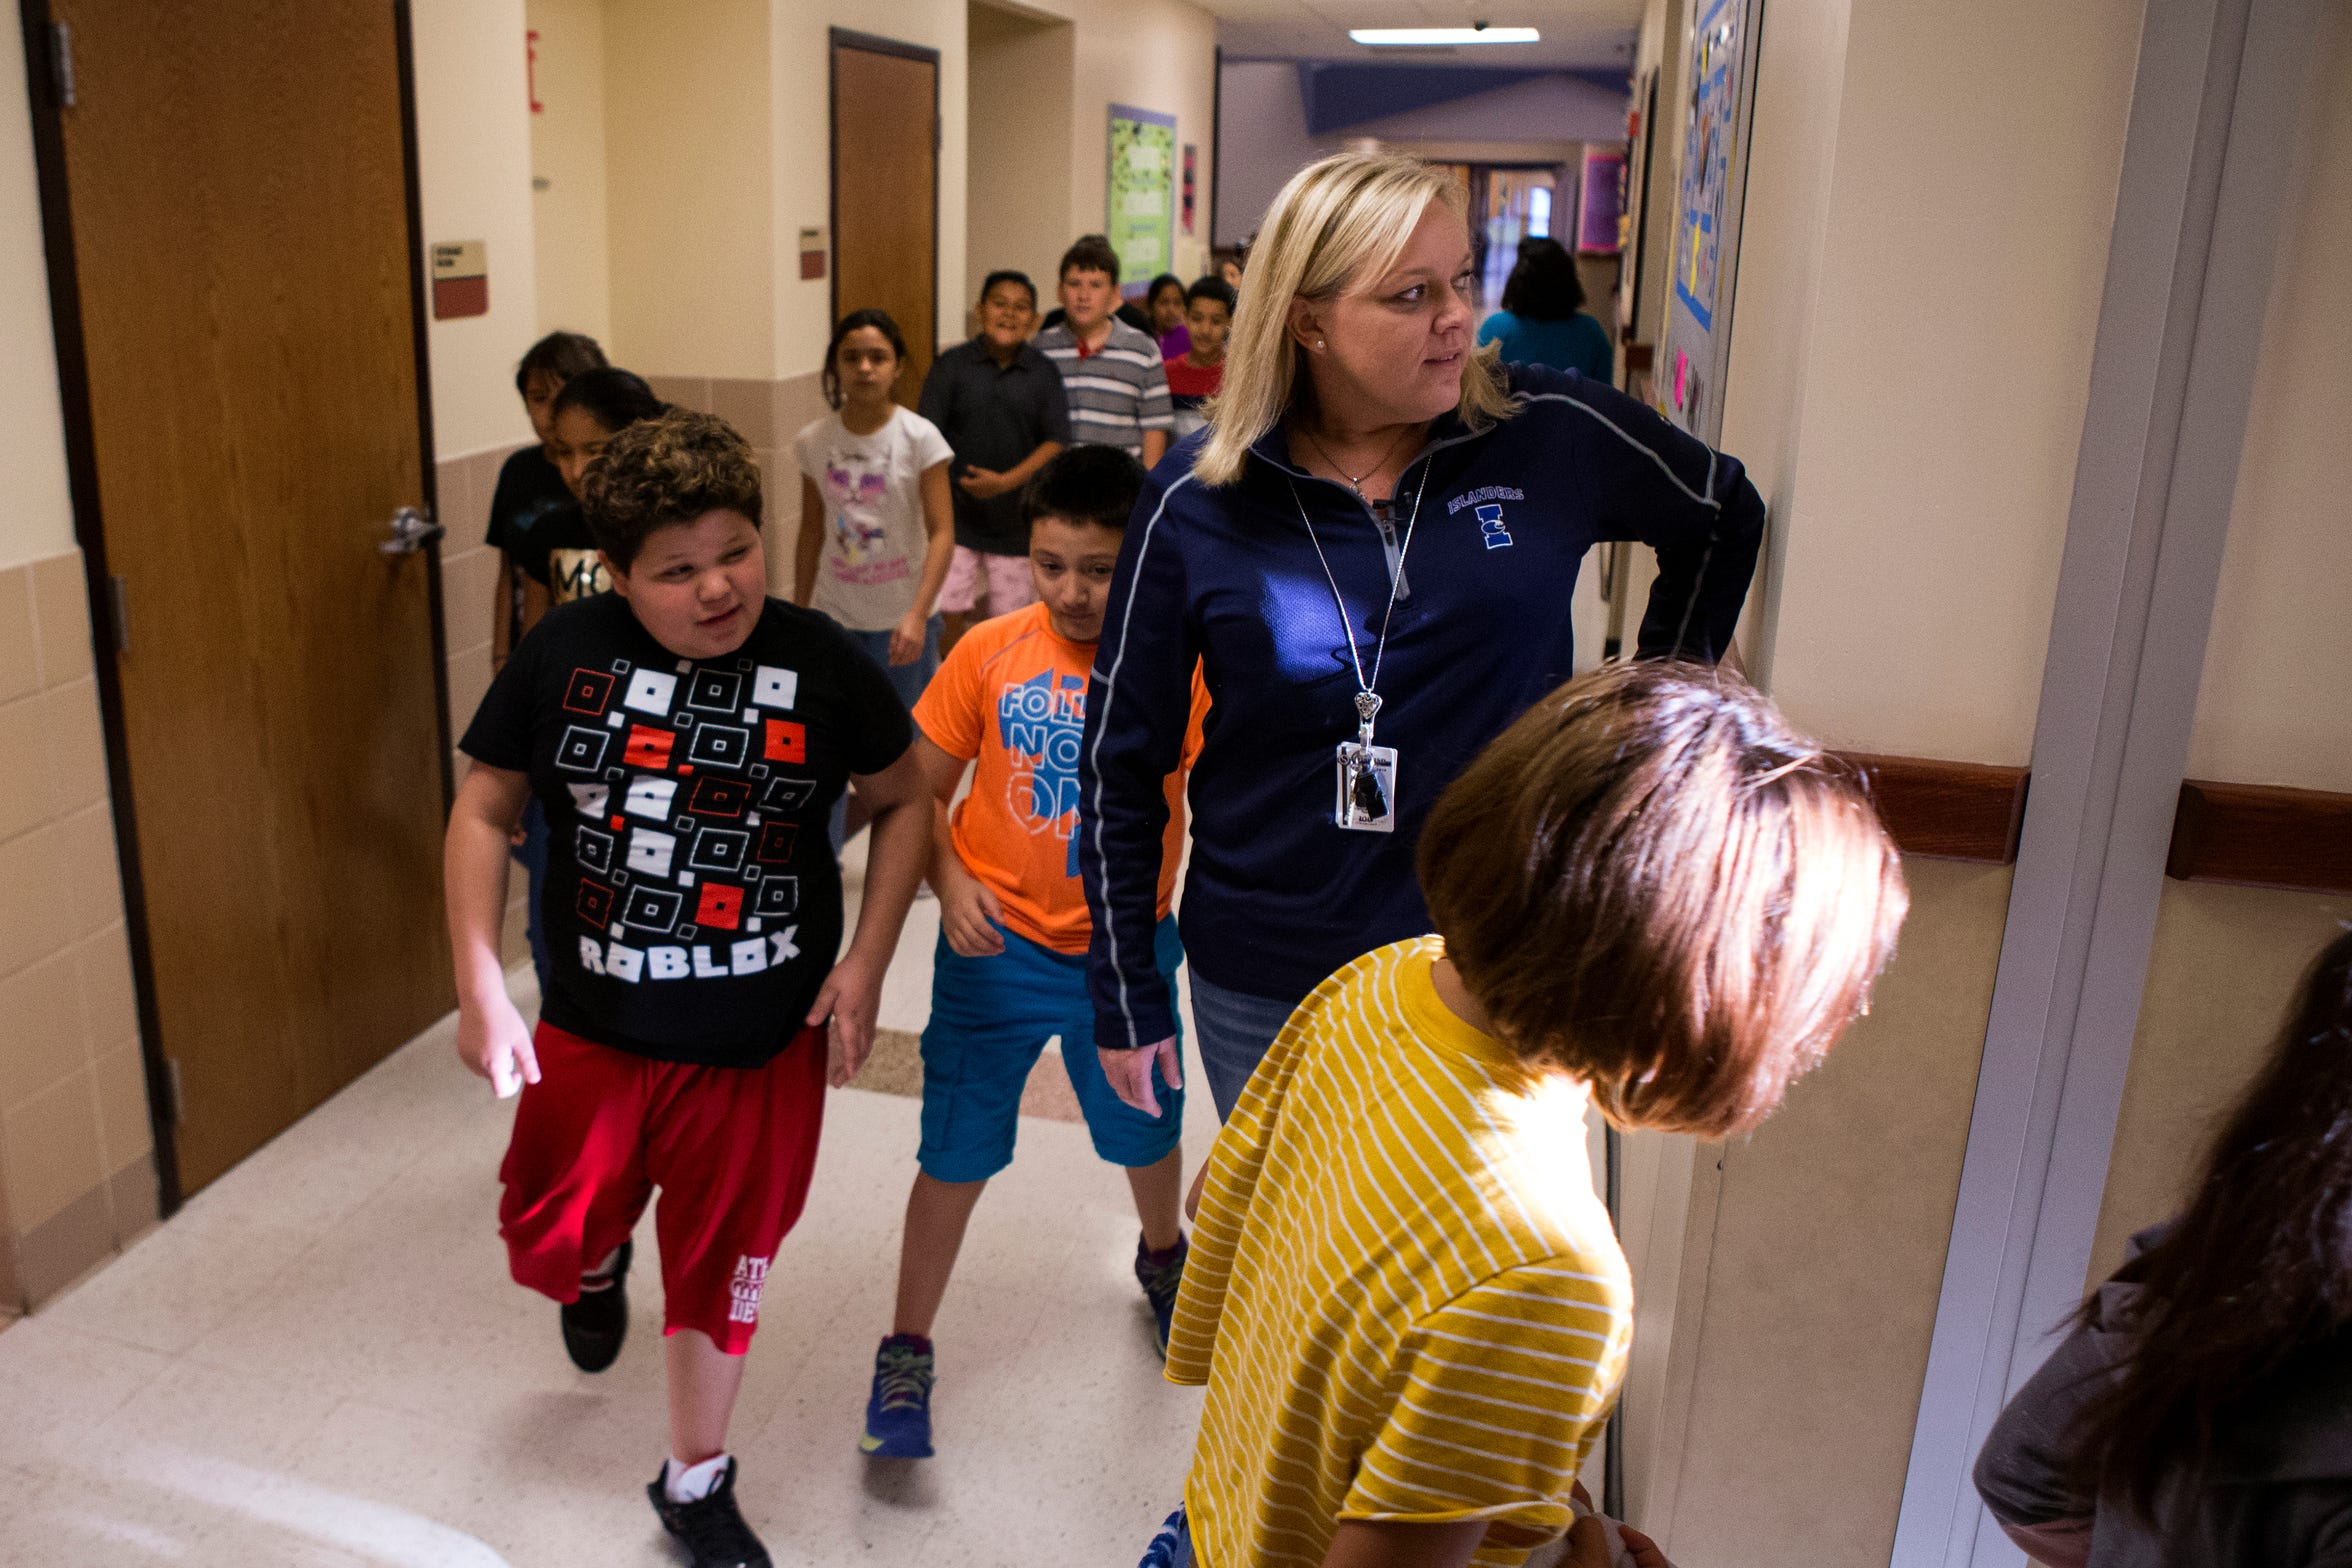 """Christine Kidd McFarland, a fifth-grade teacher at Sinton Elementary School in Sinton, Texas, drops her class off at PE before returning to her class to meet with other fifth grade teachers to plan on Monday, September 17, 2018. """"I wish I had more time to plan lessons that were more engaging for students,"""" she said. """"I feel like we work real hard to find good lessons but then we find that we run out of time."""""""